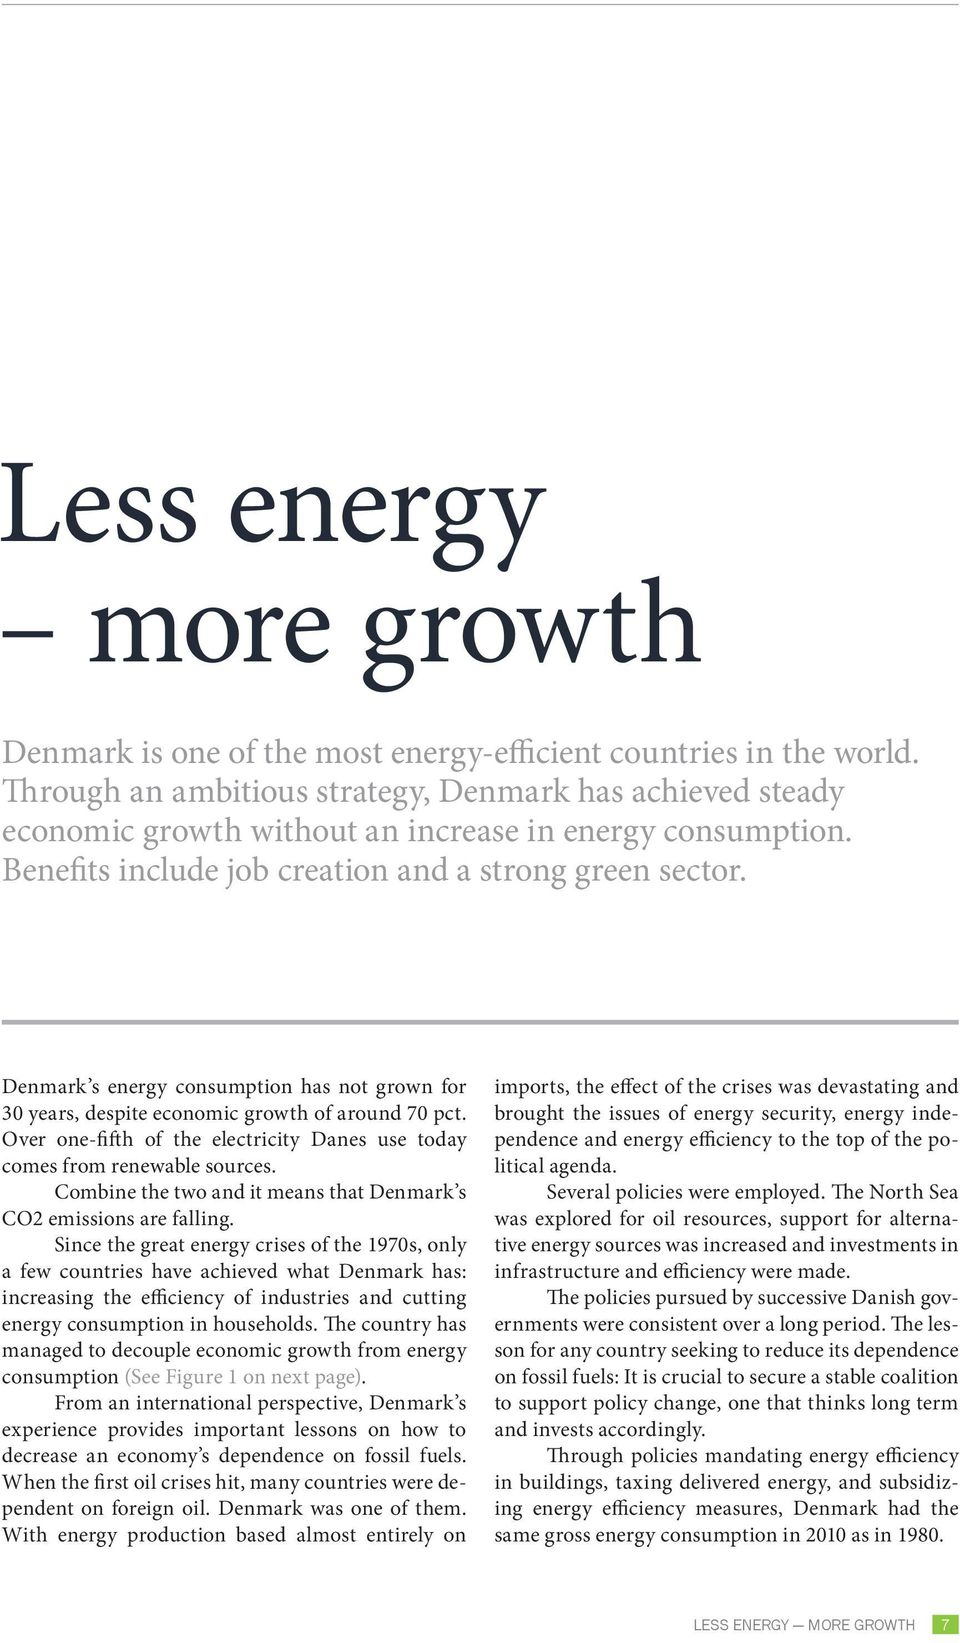 Denmark s energy consumption has not grown for 30 years, despite economic growth of around 70 pct. Over one-fifth of the electricity Danes use today comes from renewable sources.